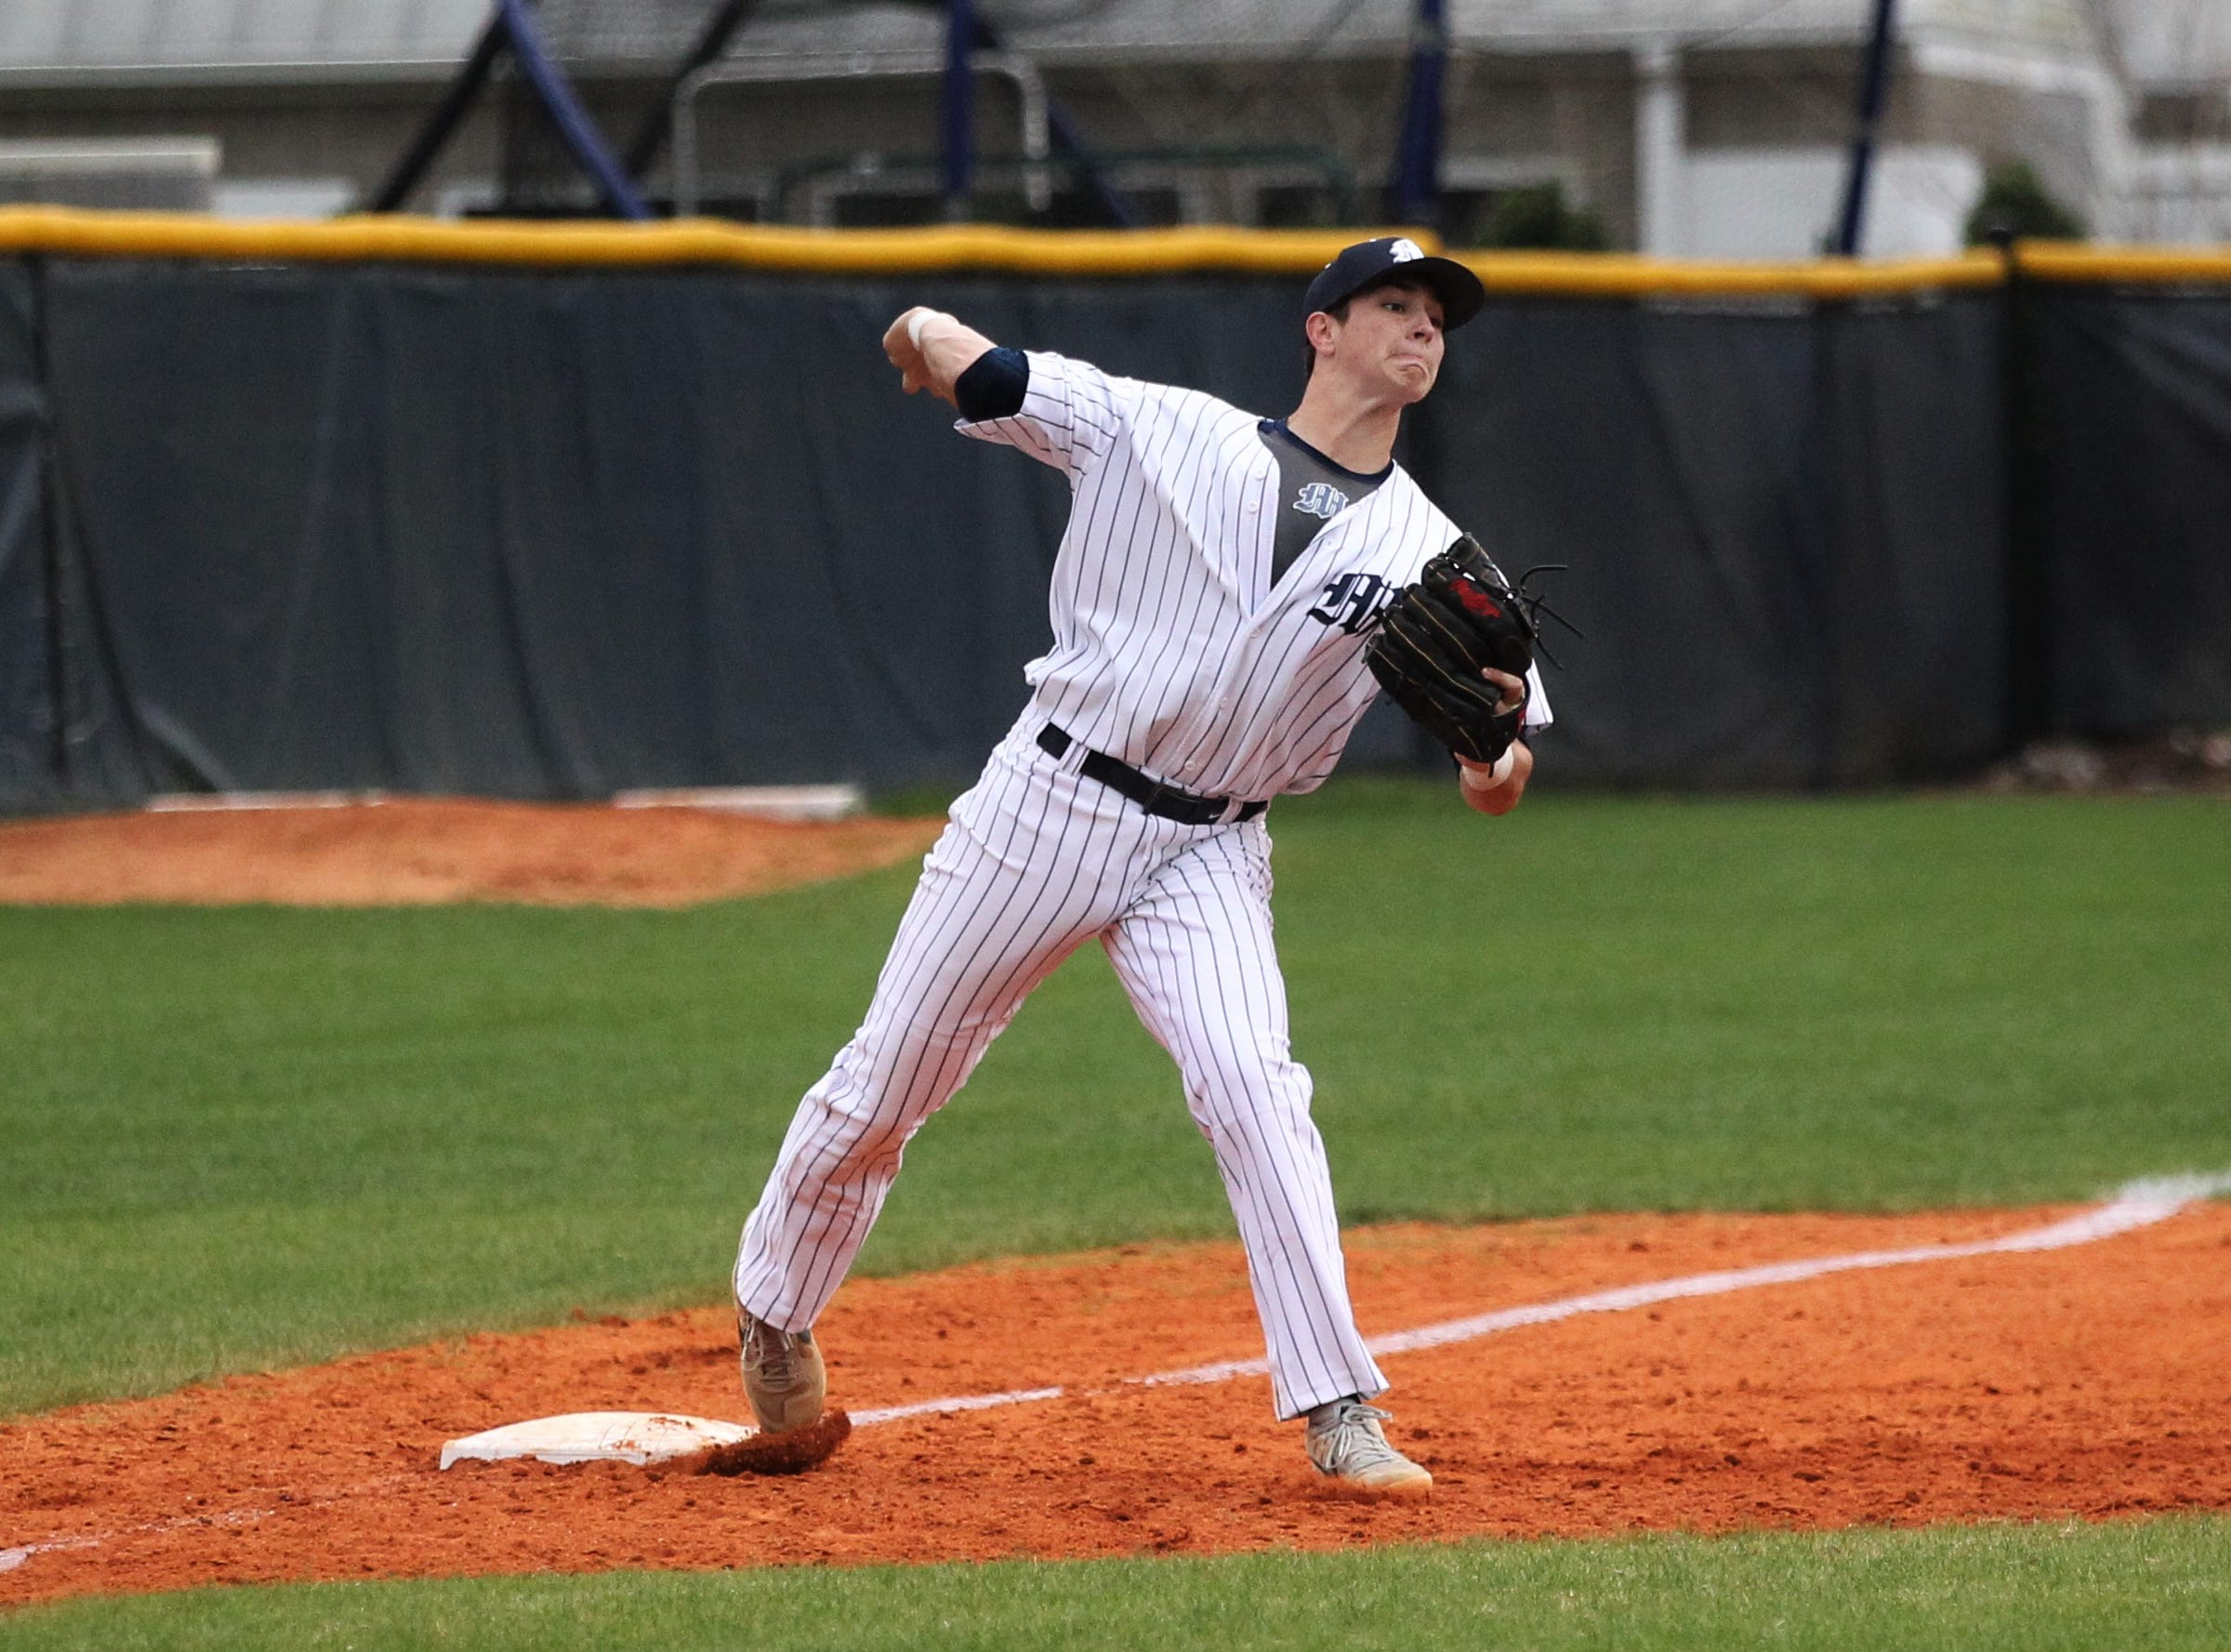 Maclay third baseman Jason Norris steps on third for an out and throws to first as Liberty County's baseball team went on the road to beat Maclay 8-2 on Saturday, March 16, 2019. The Bulldogs played their first game following their head coach Corey Crum's tragic death six days ago.